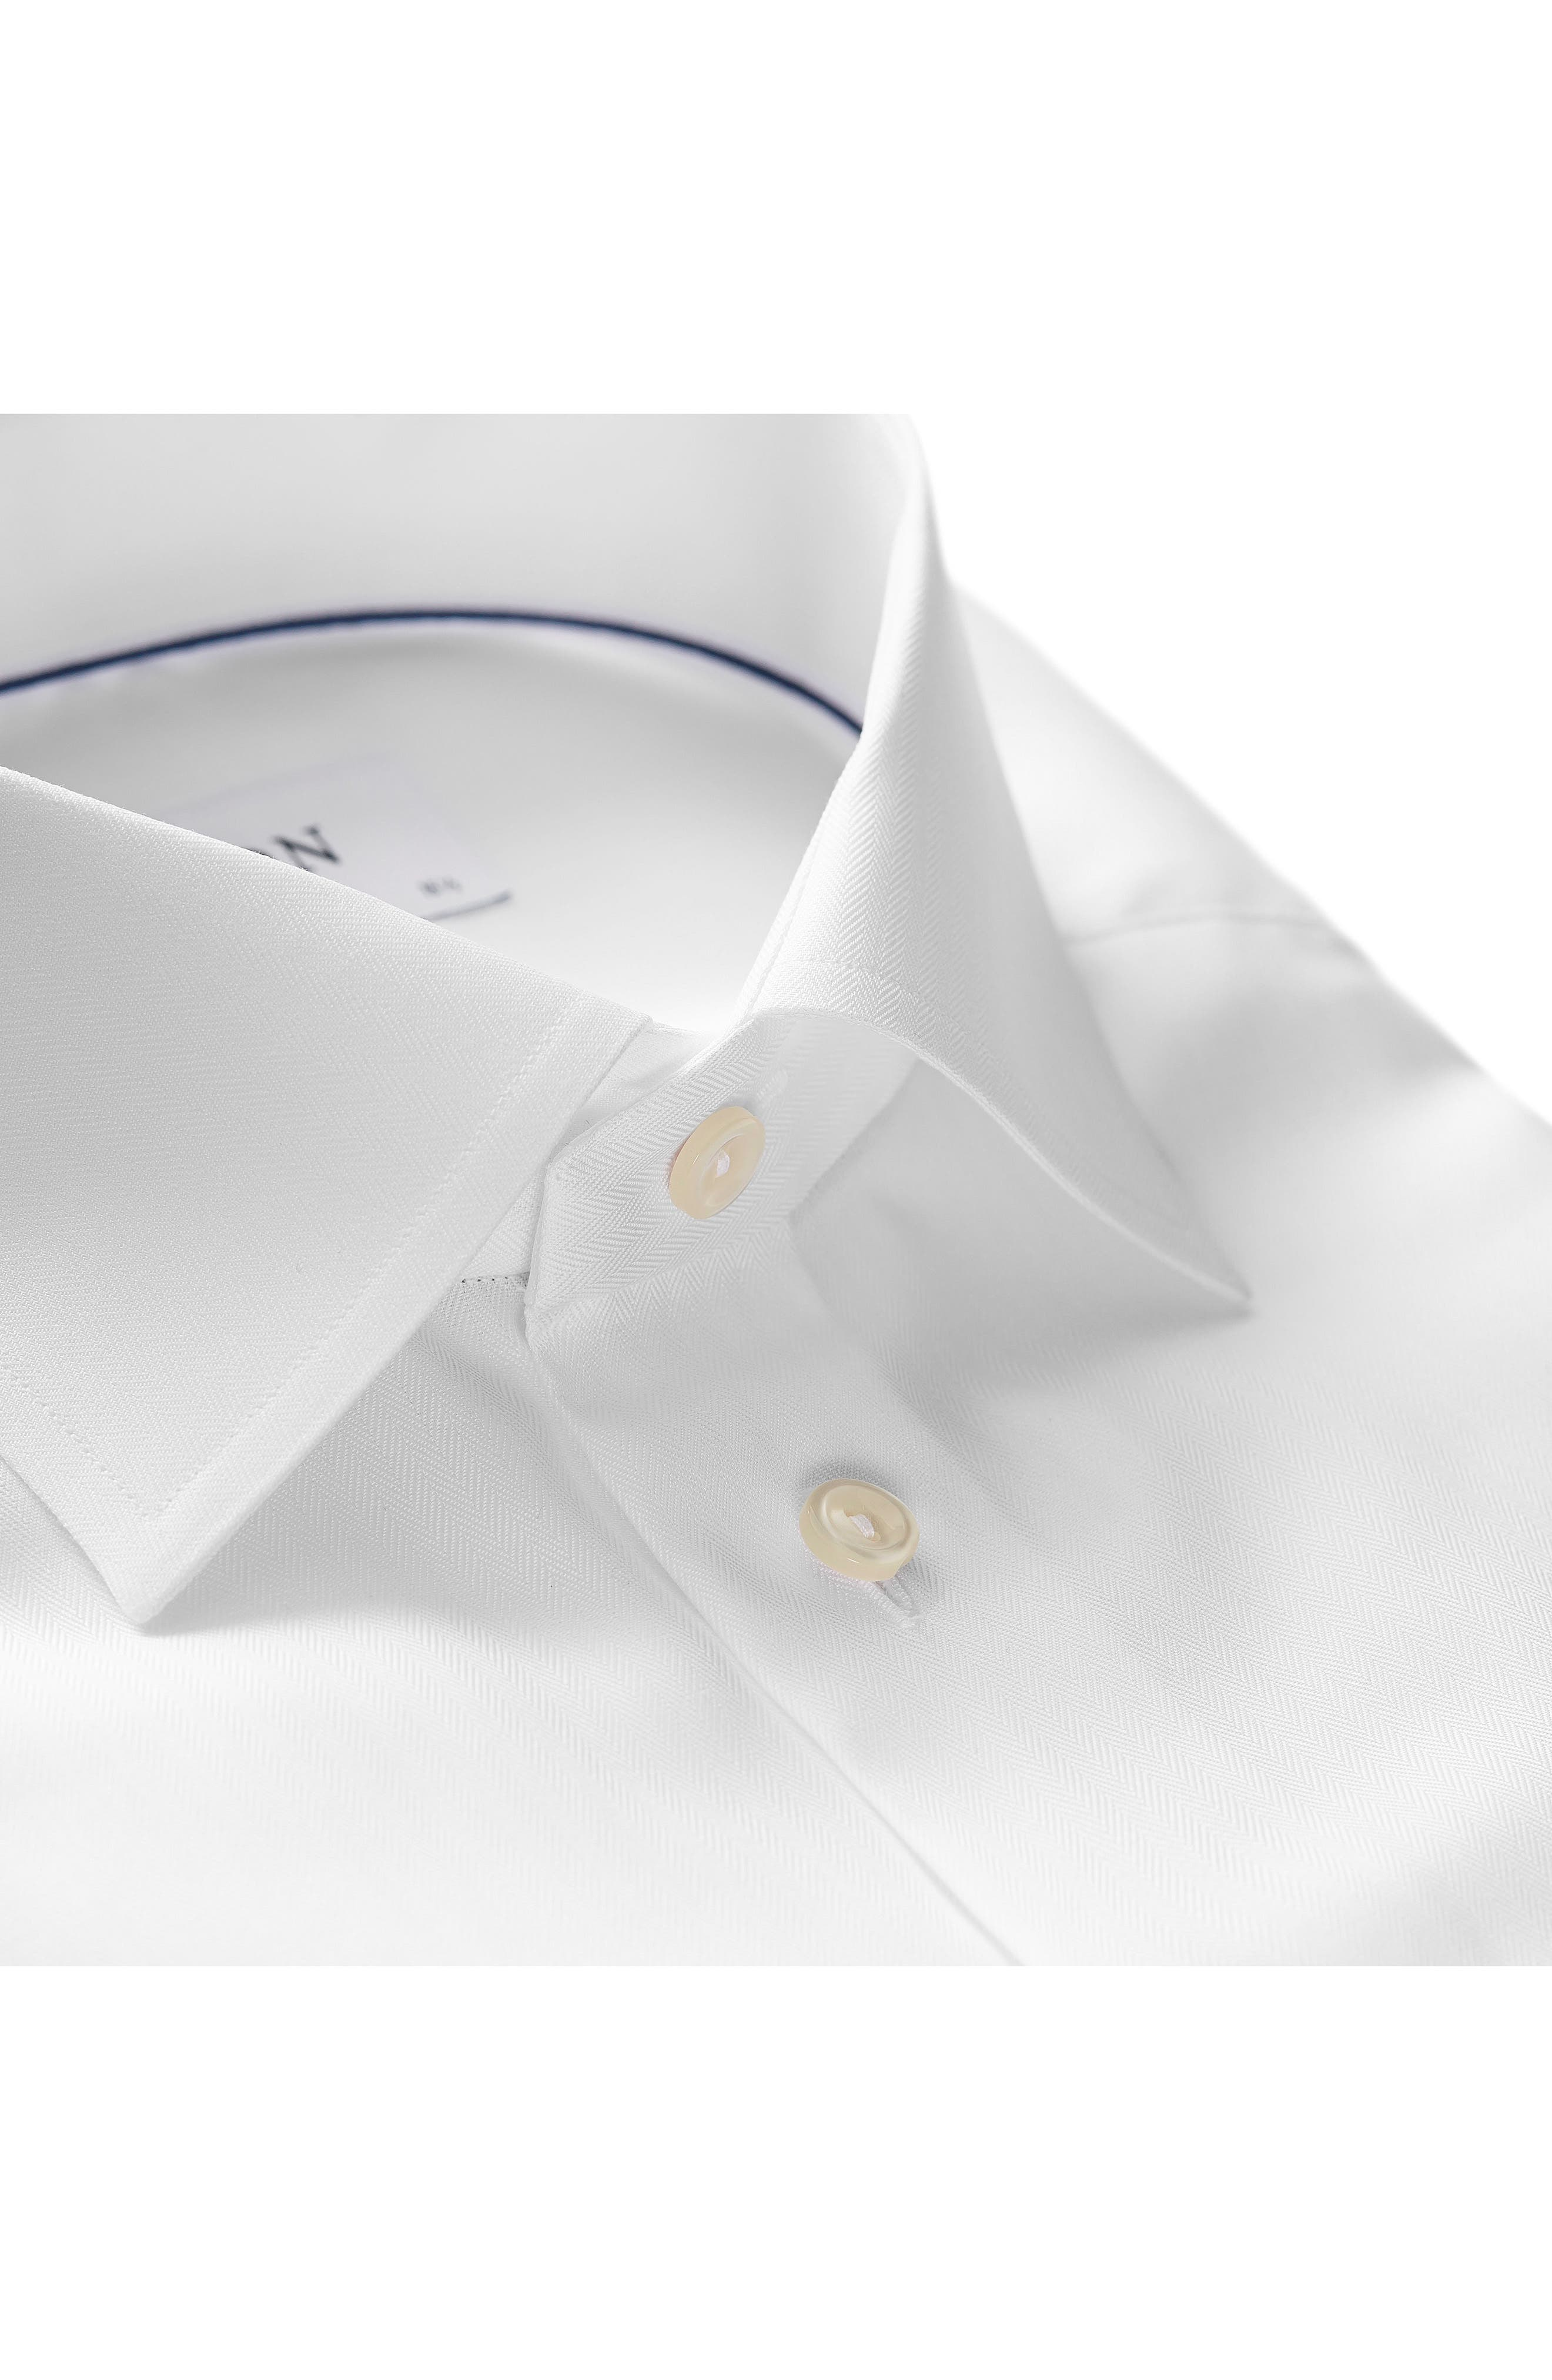 Slim Fit Herringbone Dress Shirt,                             Alternate thumbnail 2, color,                             WHITE